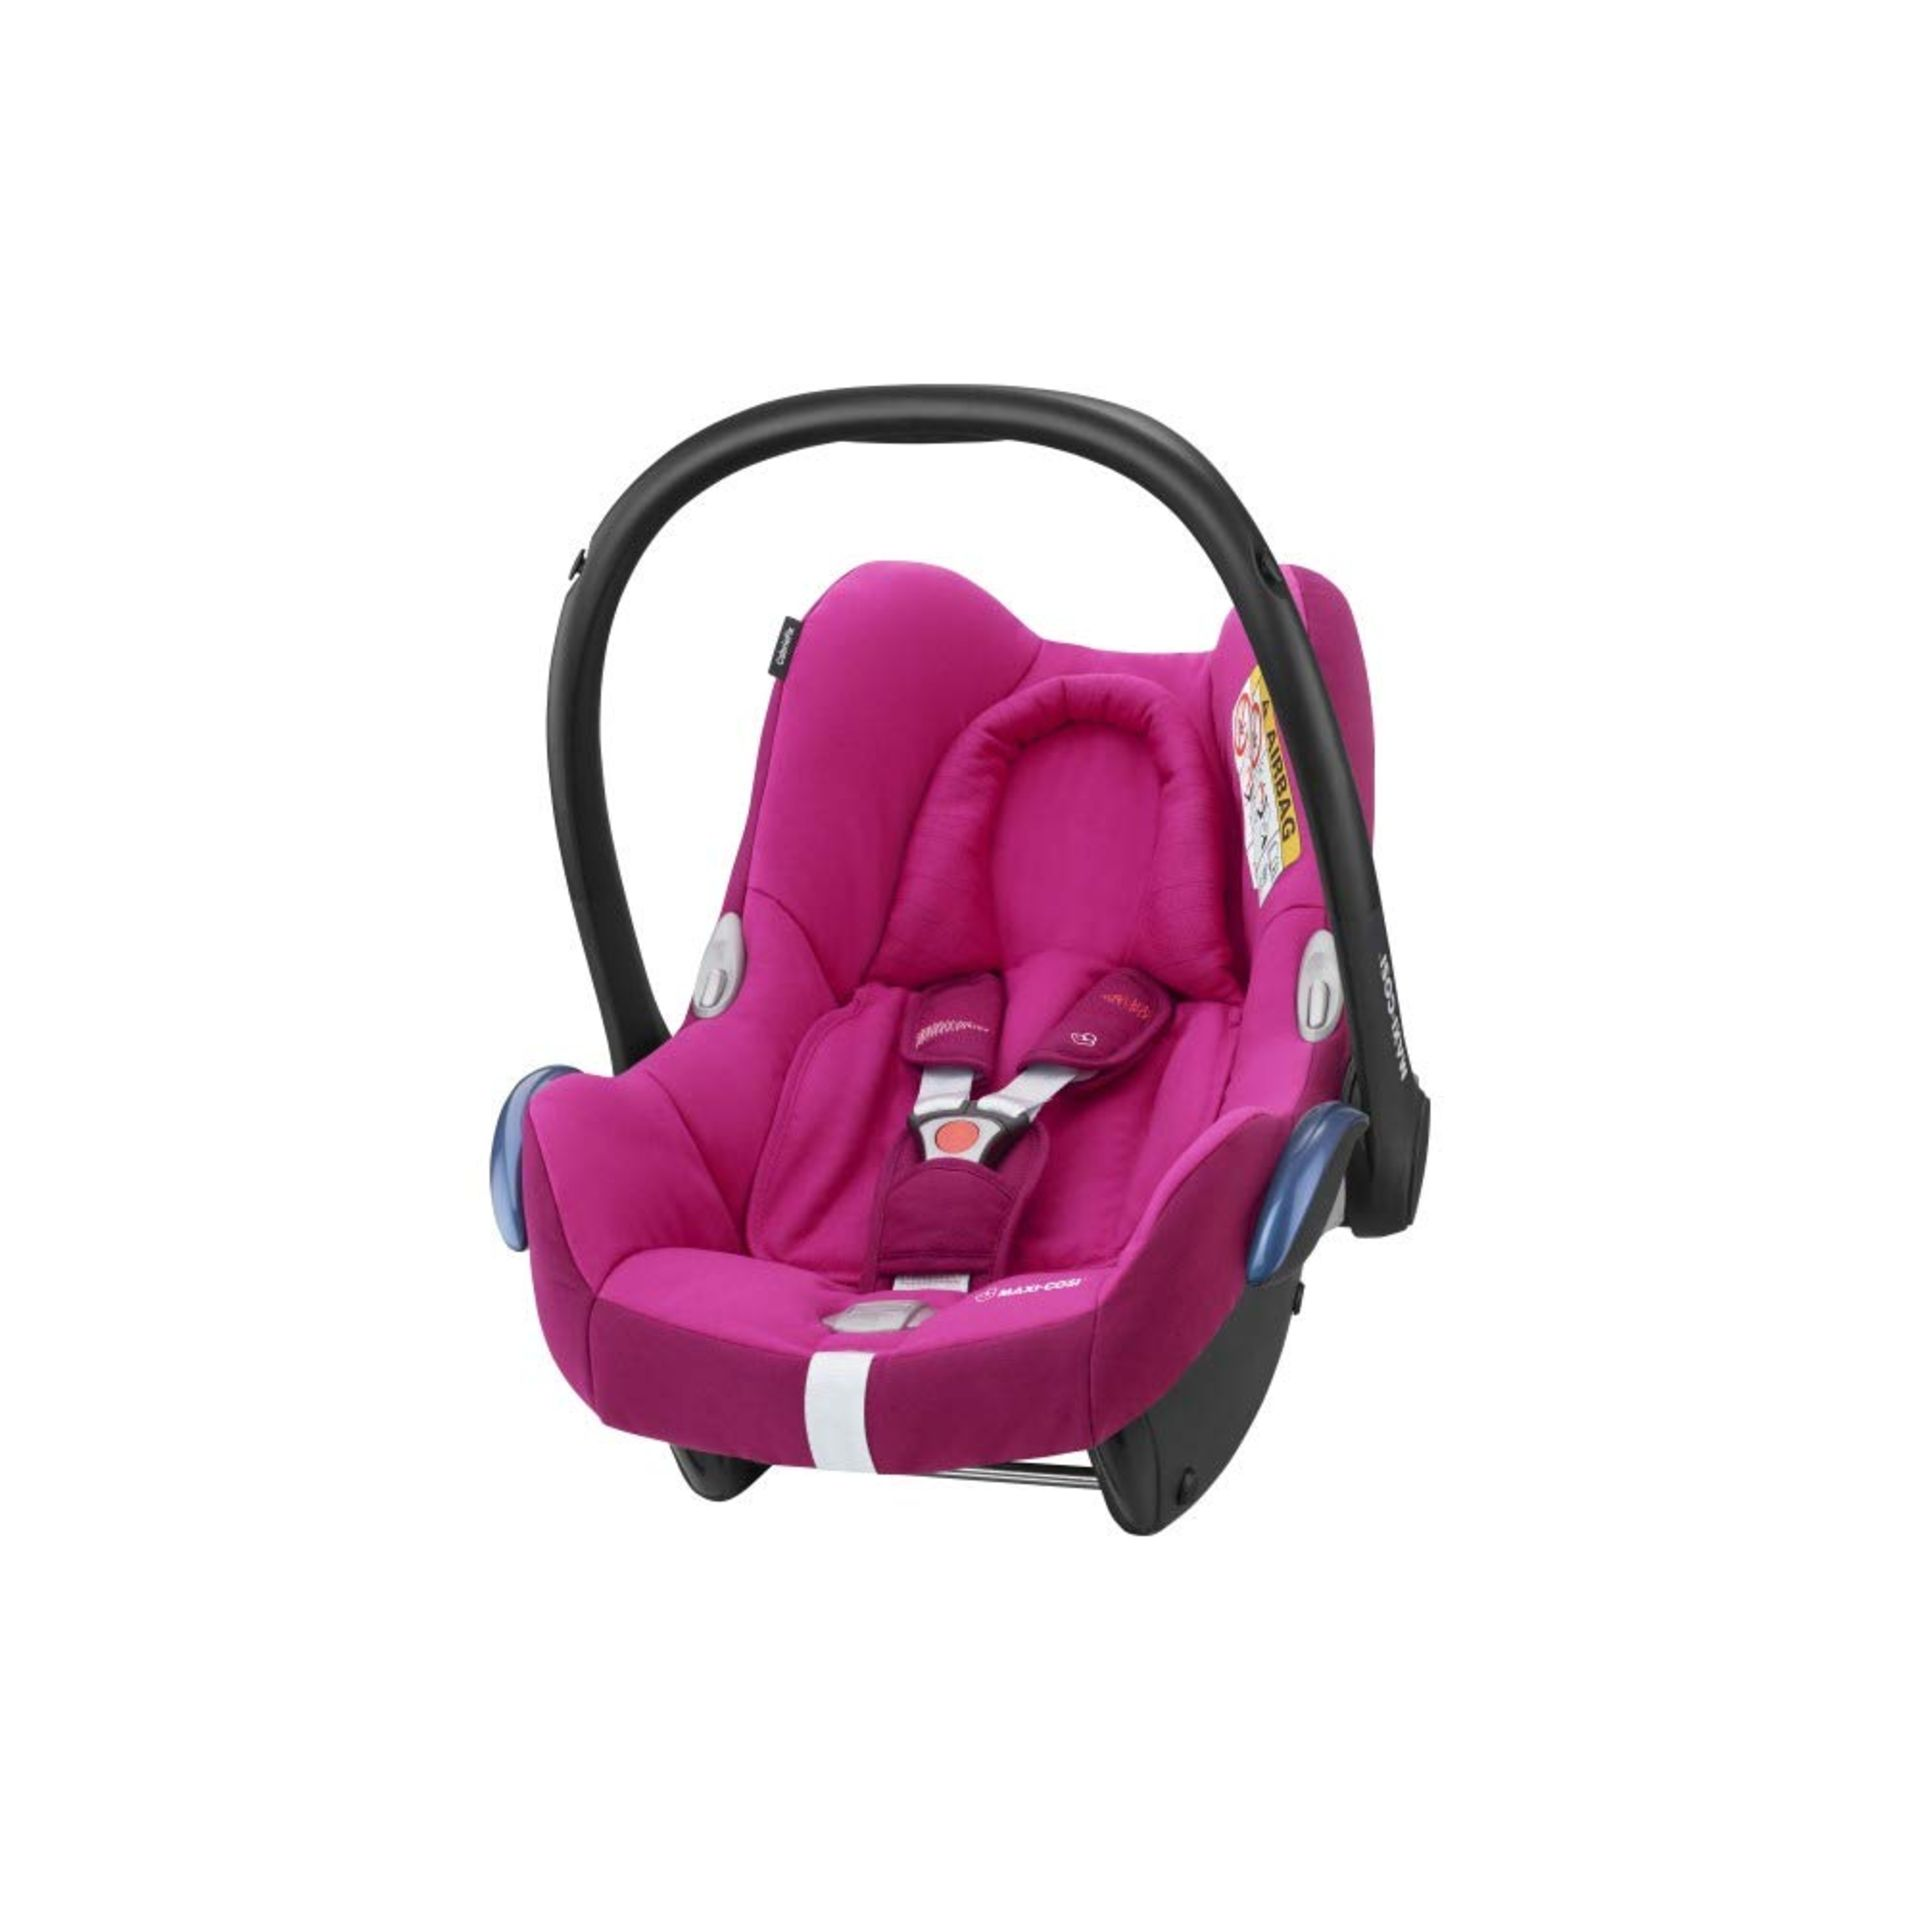 Lot 43 - NEW Maxi-Cosi CabrioFix Baby Car Seat Group 0+, ISOFIX RRP £139.99.